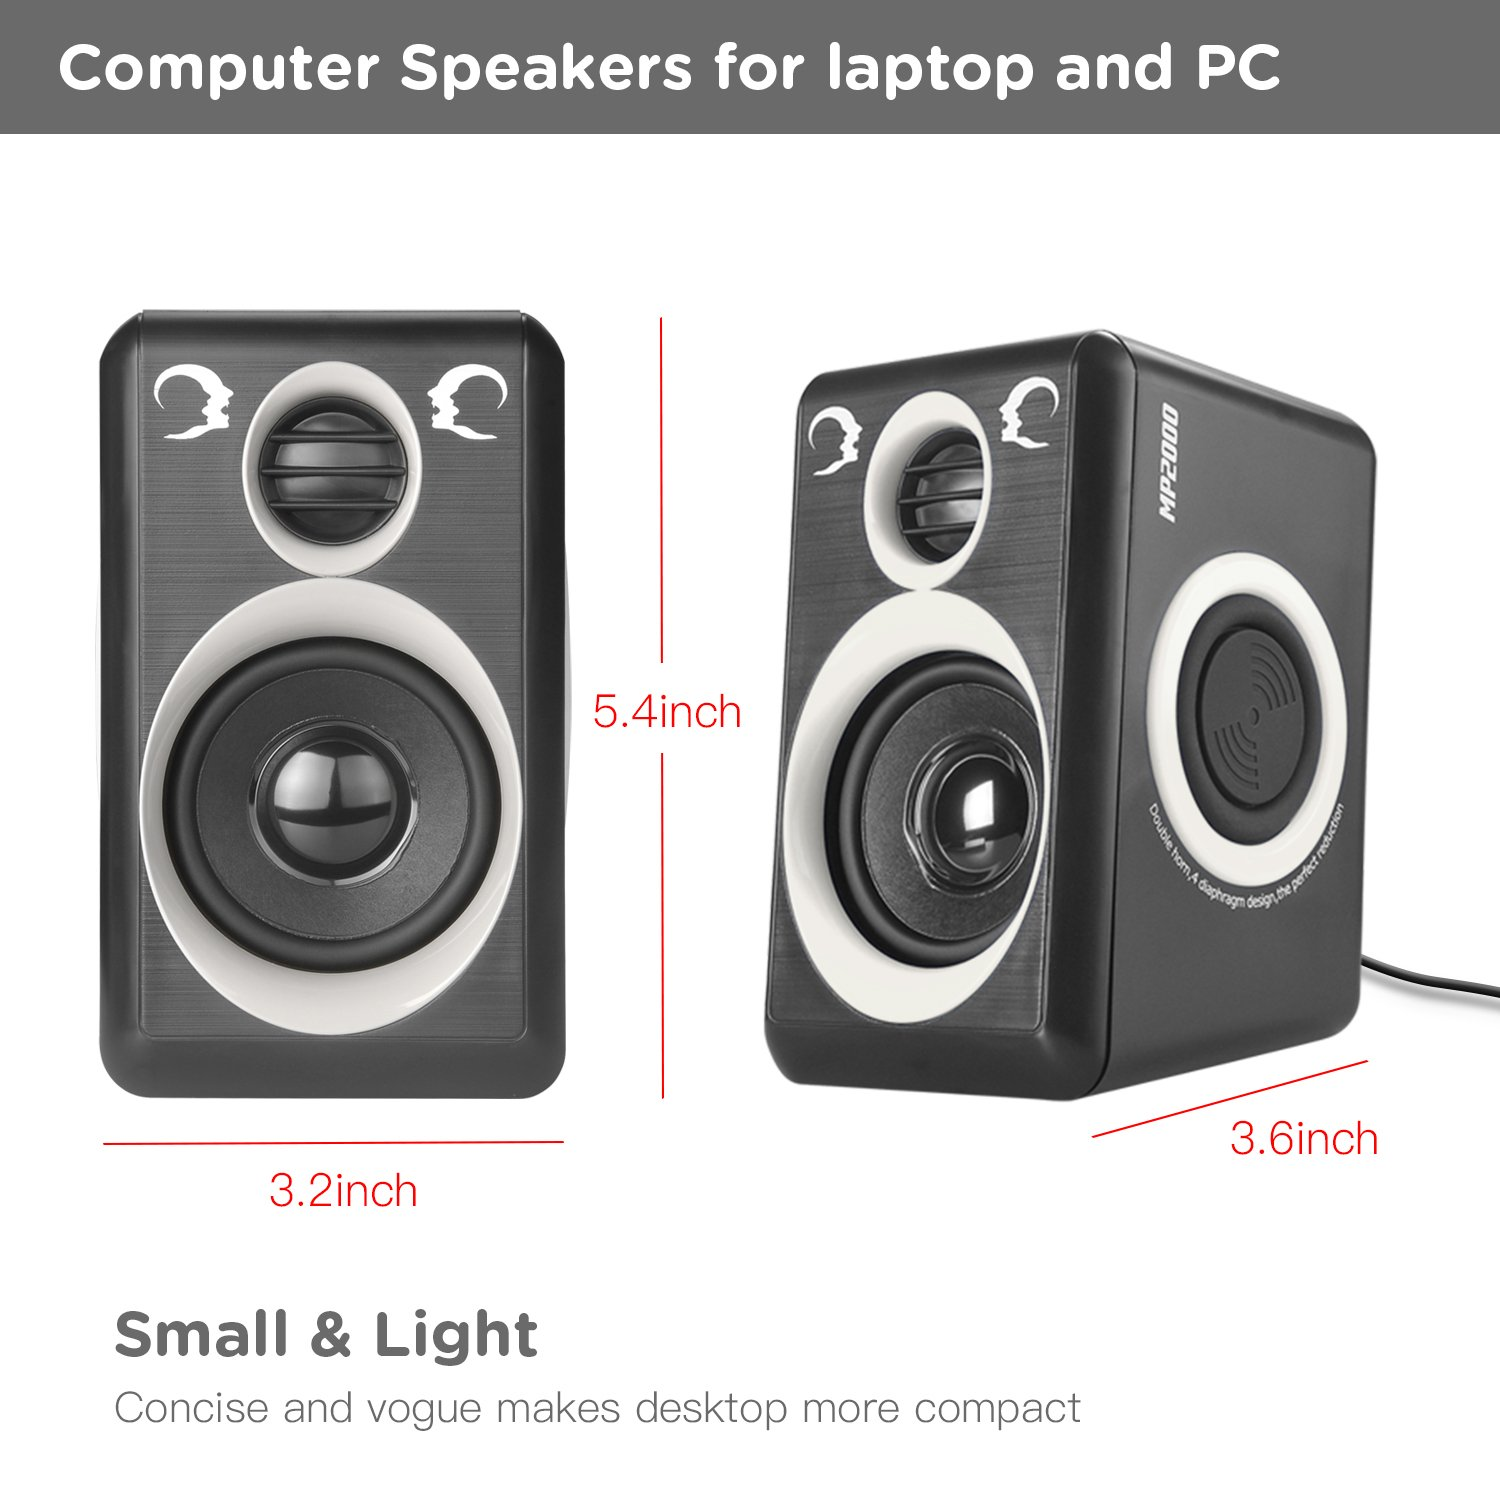 Computer Speakers With Surround Sound 2.0CH USB Wired Powered Multimedia Speaker for Desktop/TV/PC/Laptops/Smart Phone RECCAZR Built-in Four Loudspeaker Diaphragm (Gray) by RECCAZR (Image #6)